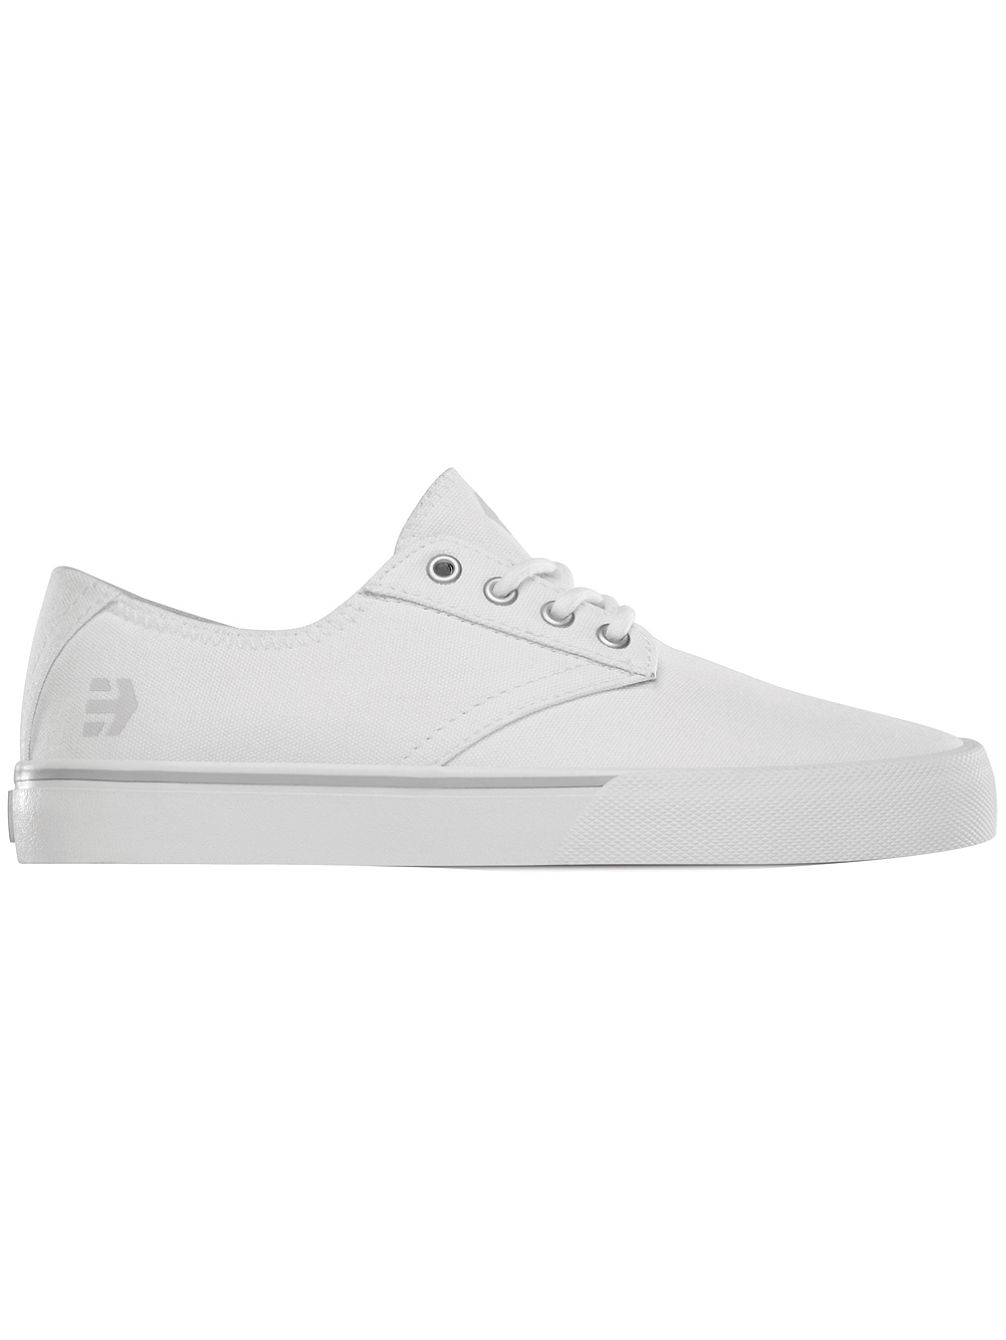 Jameson Vulc LS Sneakers Women